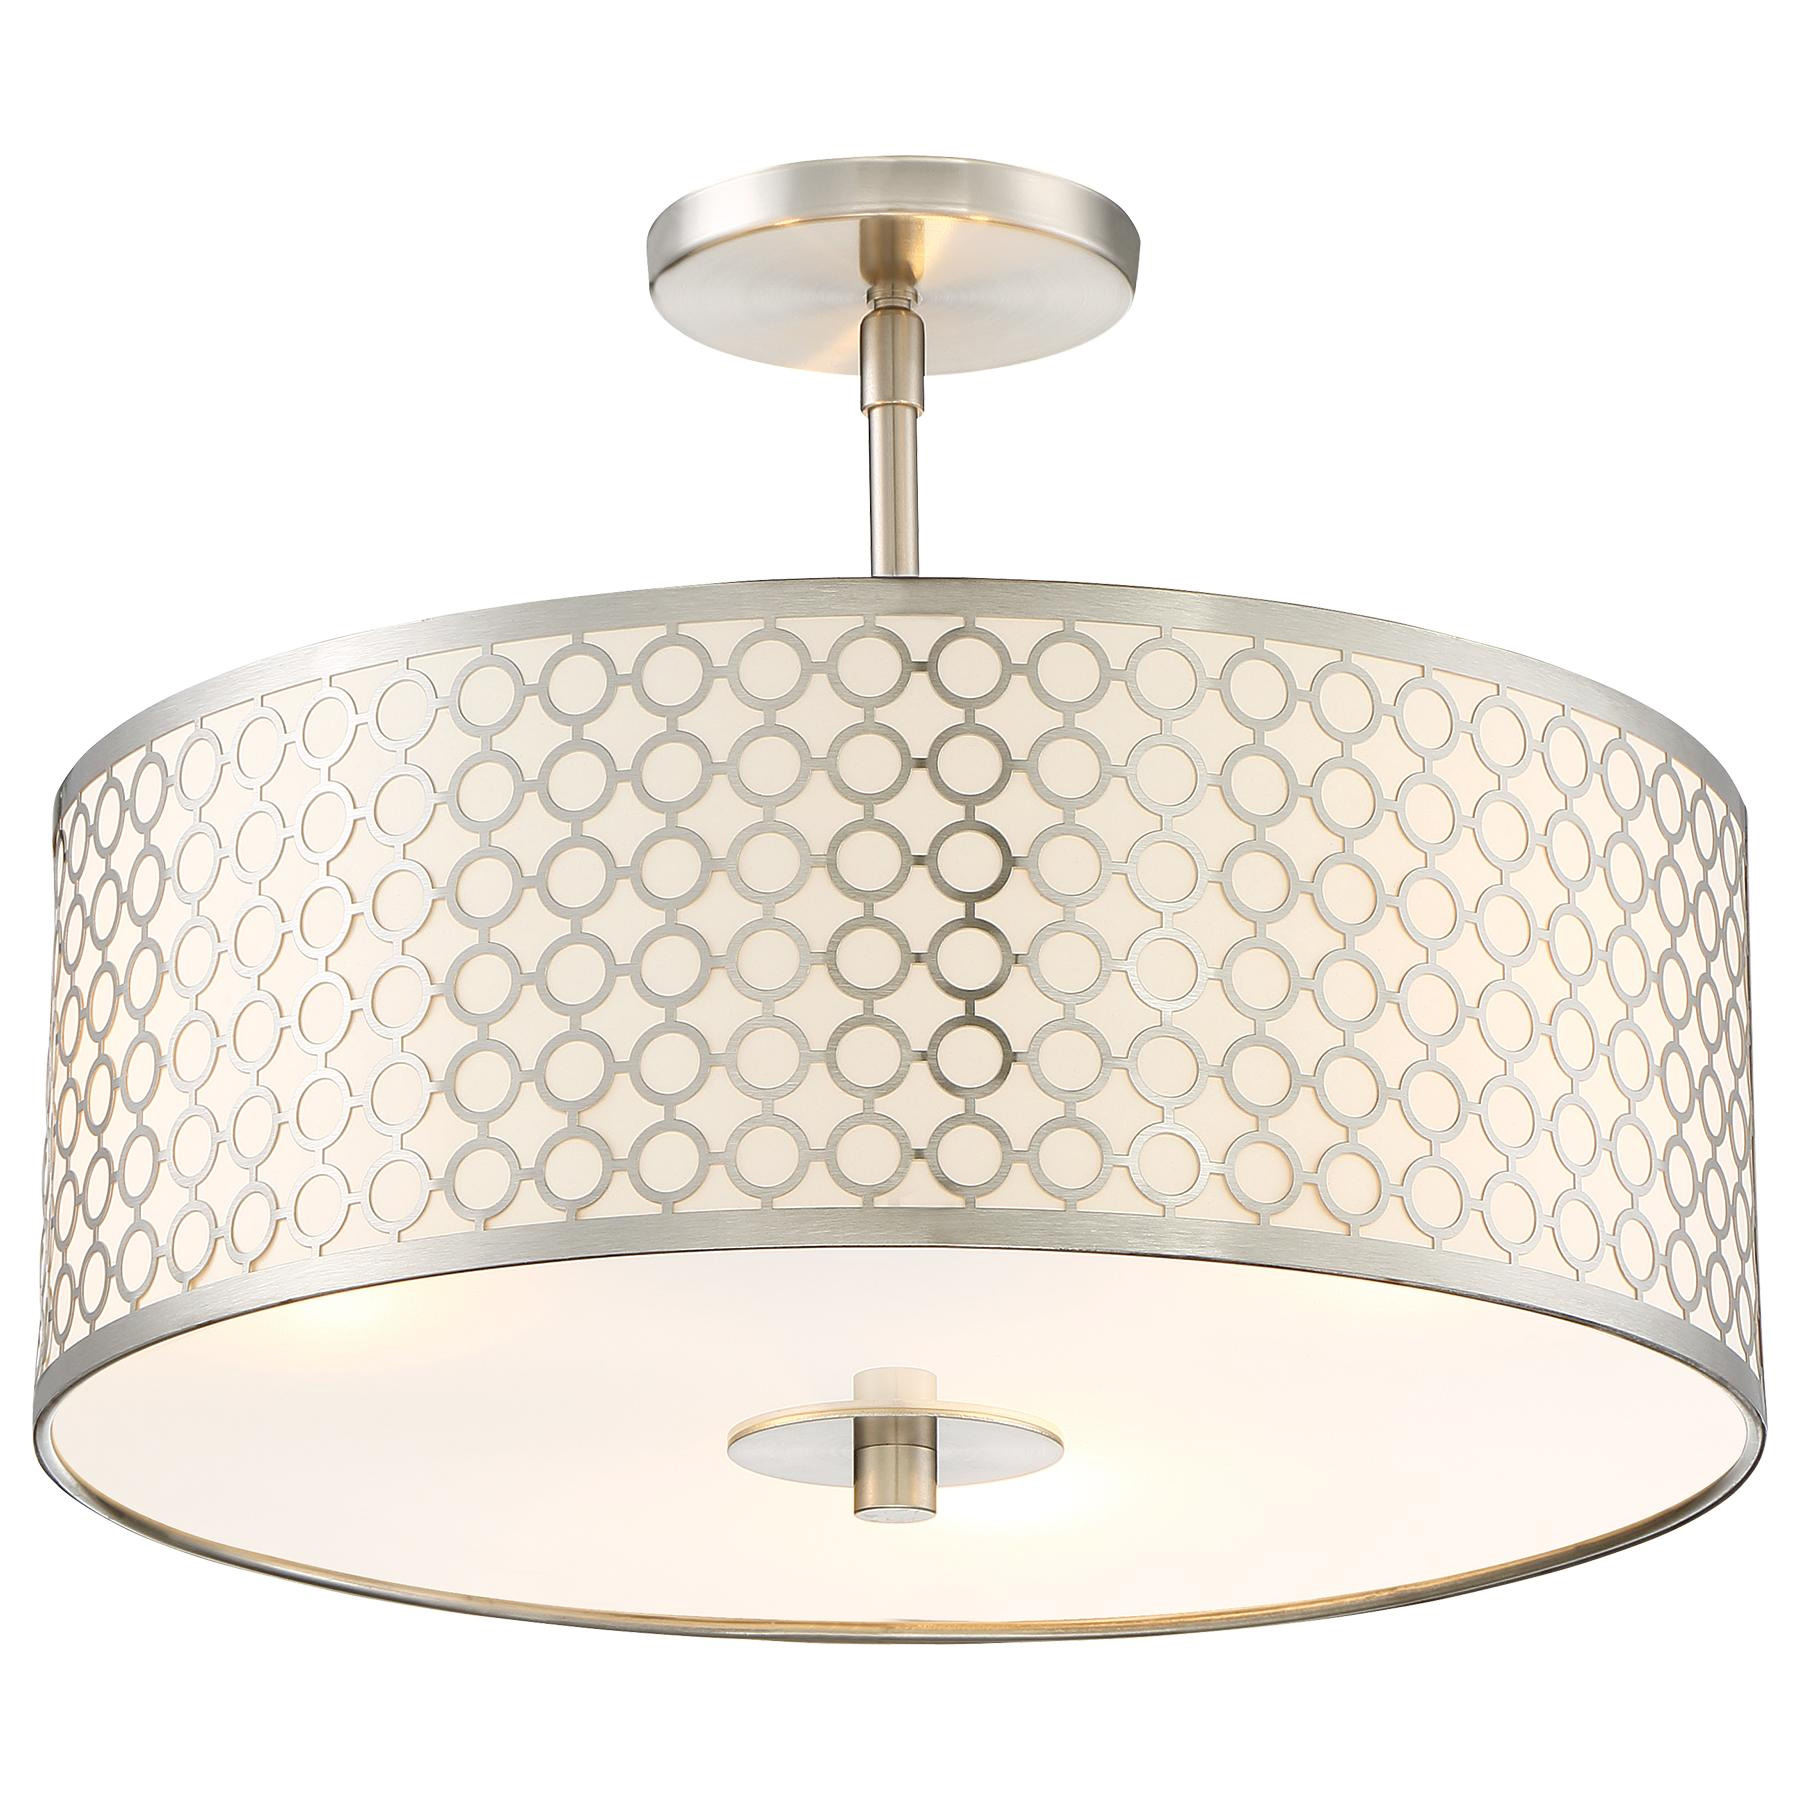 flush ceiling lights for kitchens dots semi flush ceiling light by george kovacs p1267 084 6669